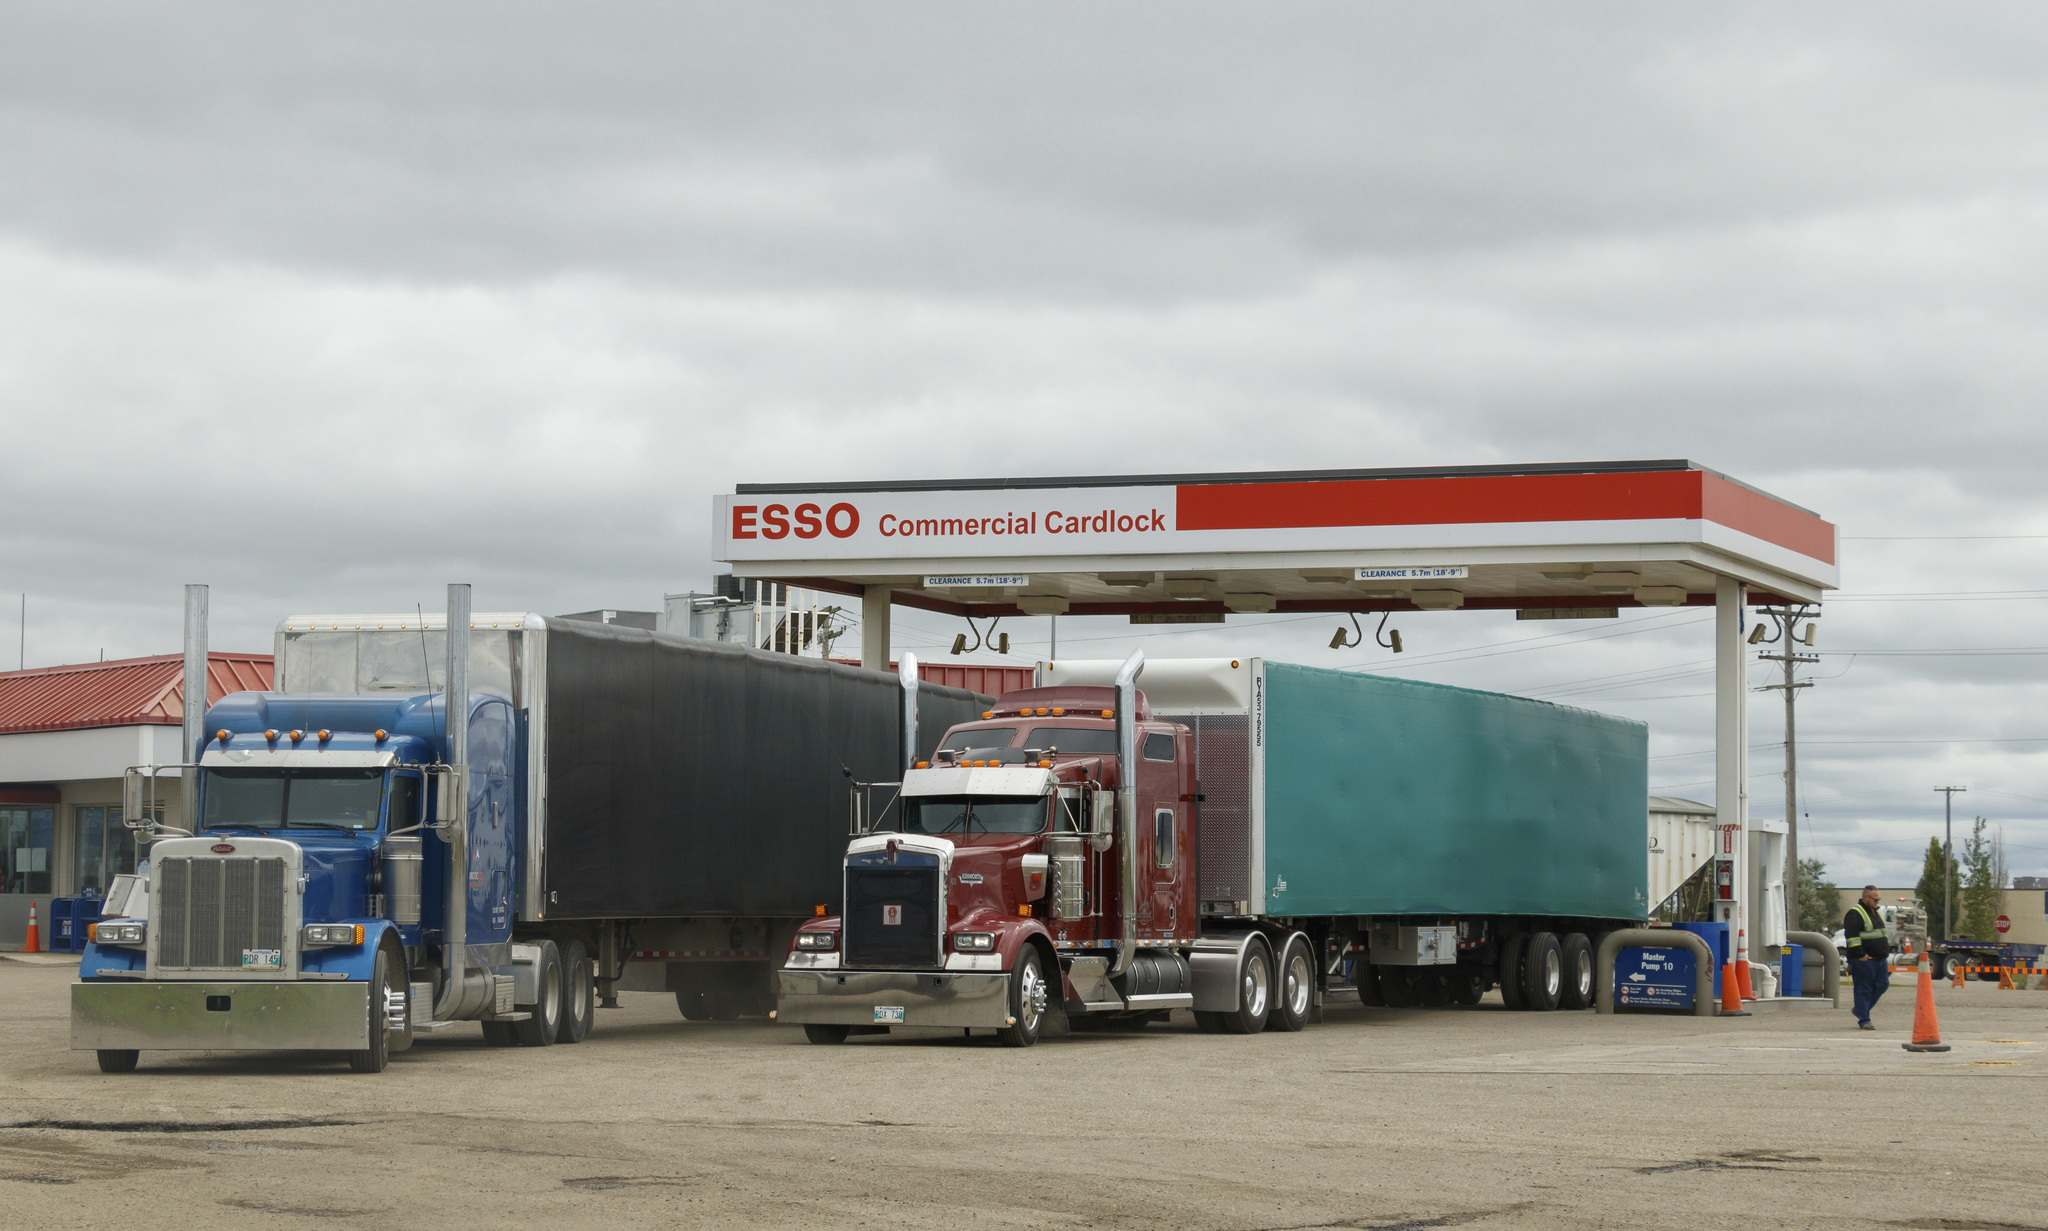 Semis pull up to the Esso Commercial Cardlock on Highway One in this file image. (FILE/The Brandon Sun)</p>